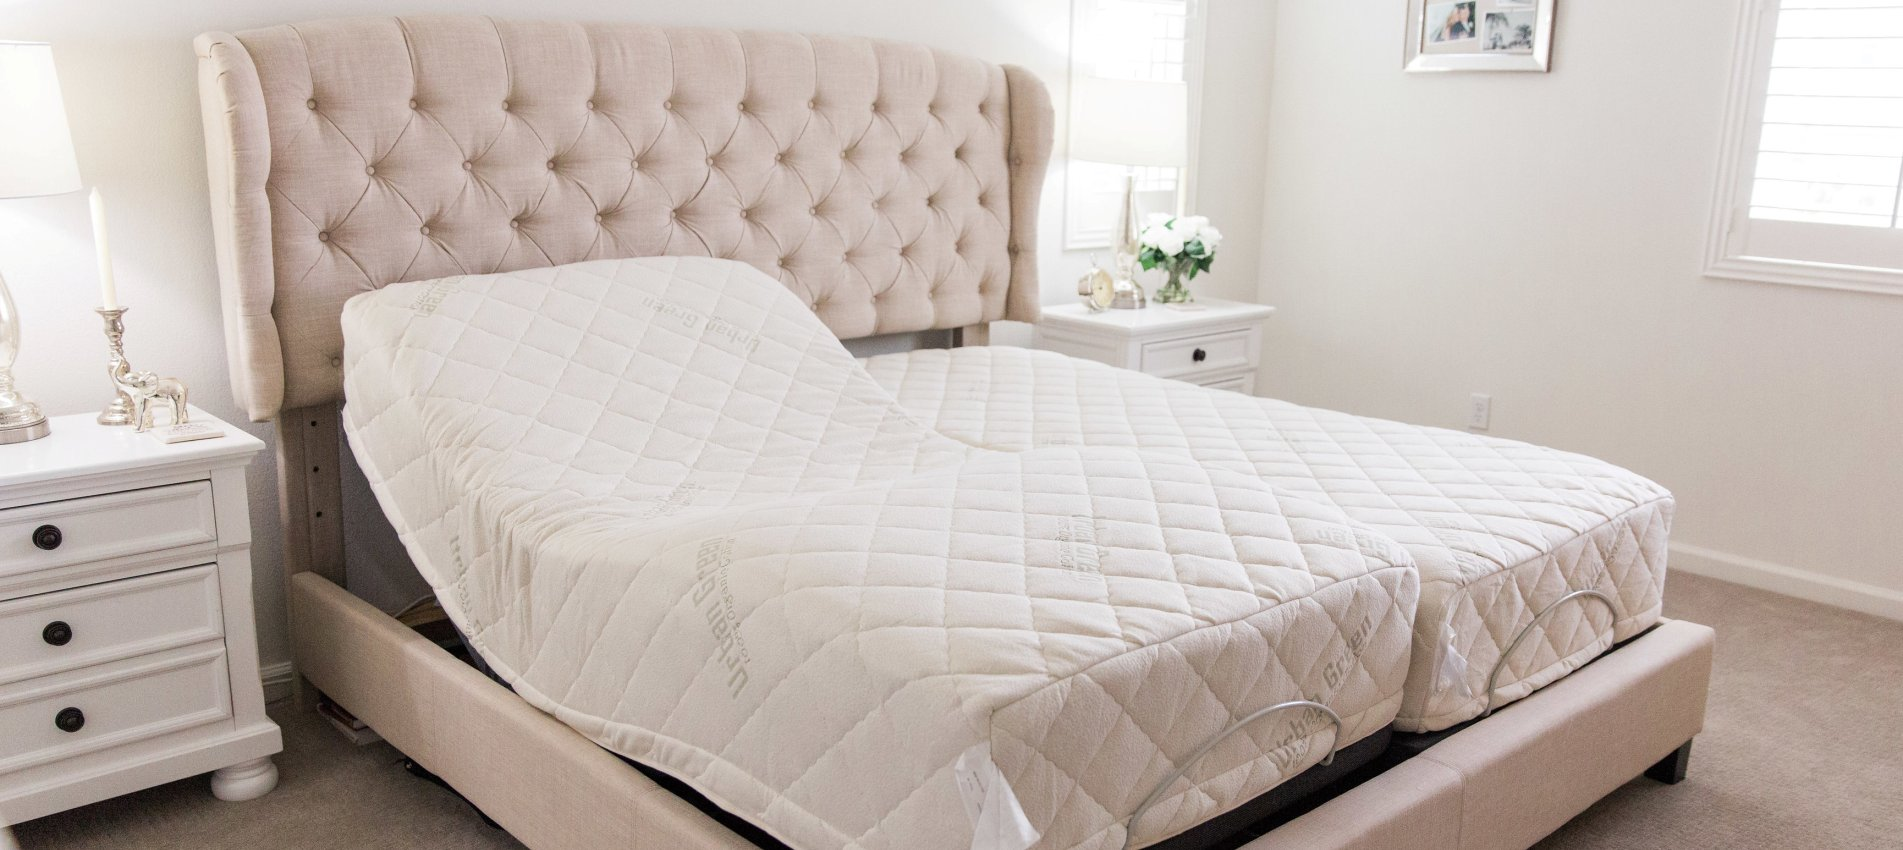 A Review of Foam Sweet Foam Mattresses